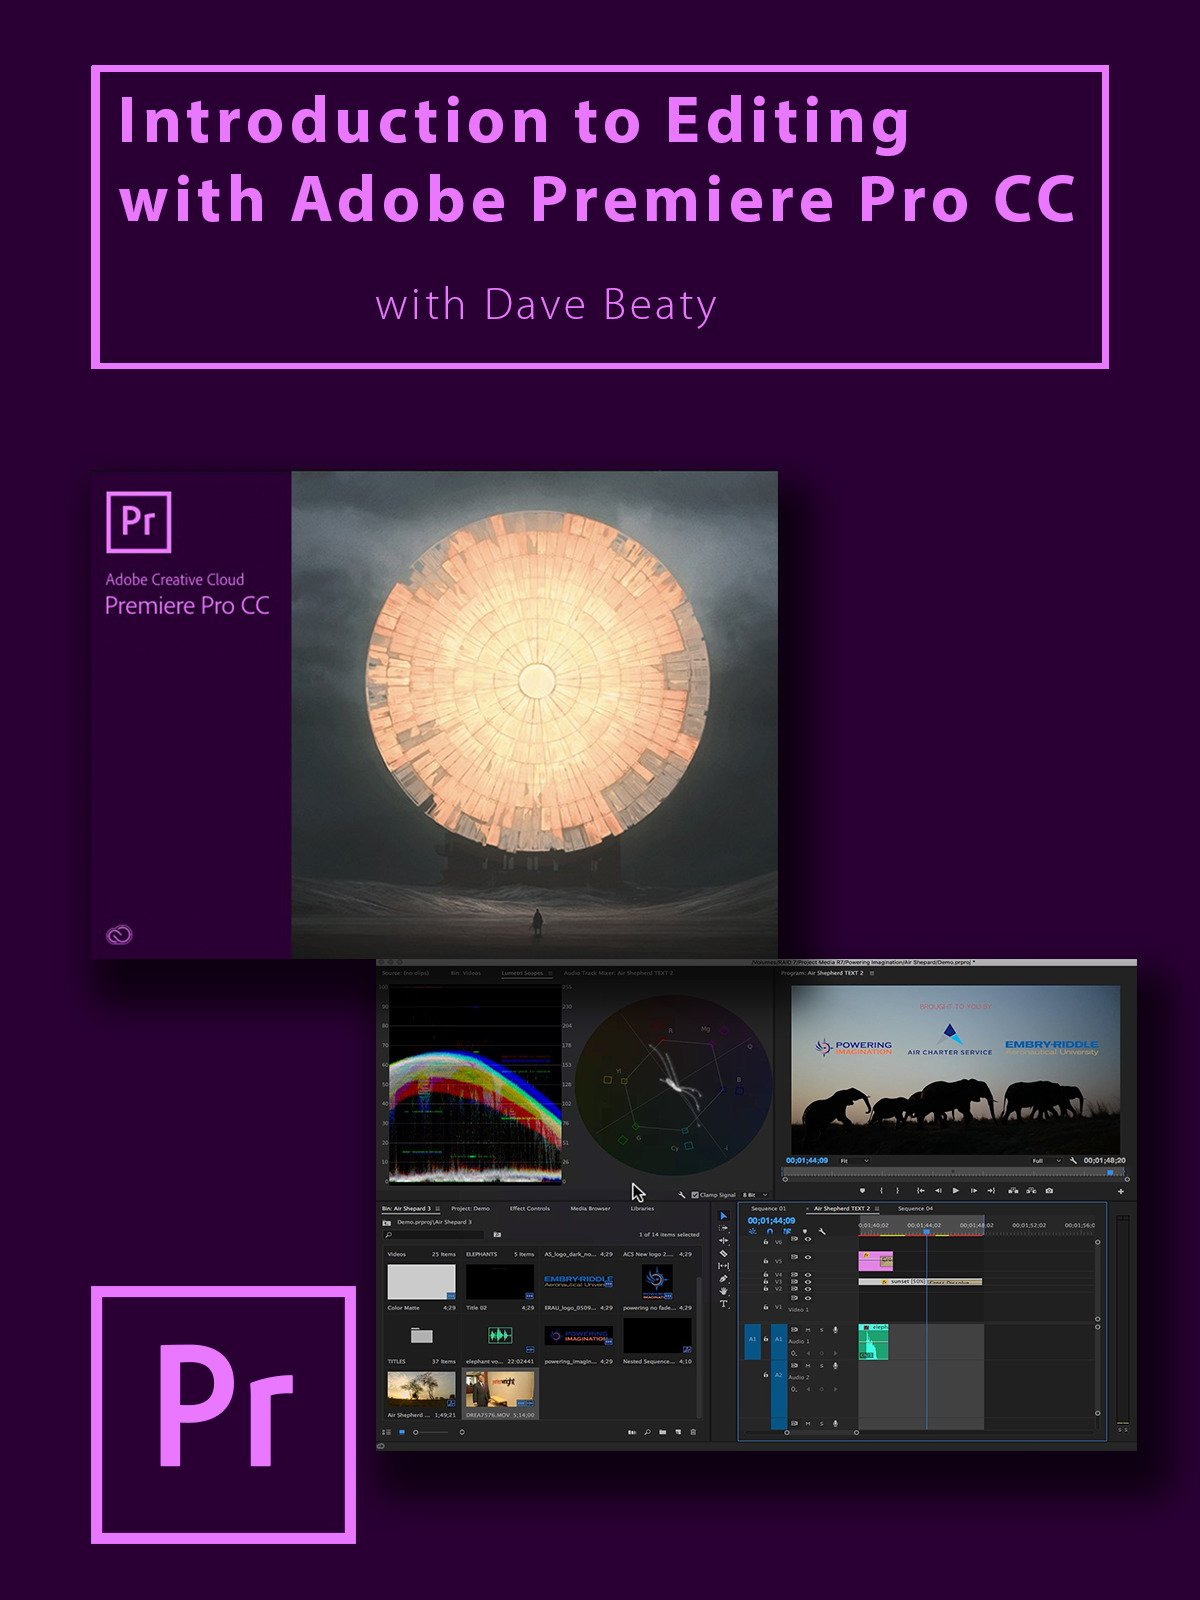 Introduction To Editing With Adobe Premiere Pro CC on Amazon Prime Video UK